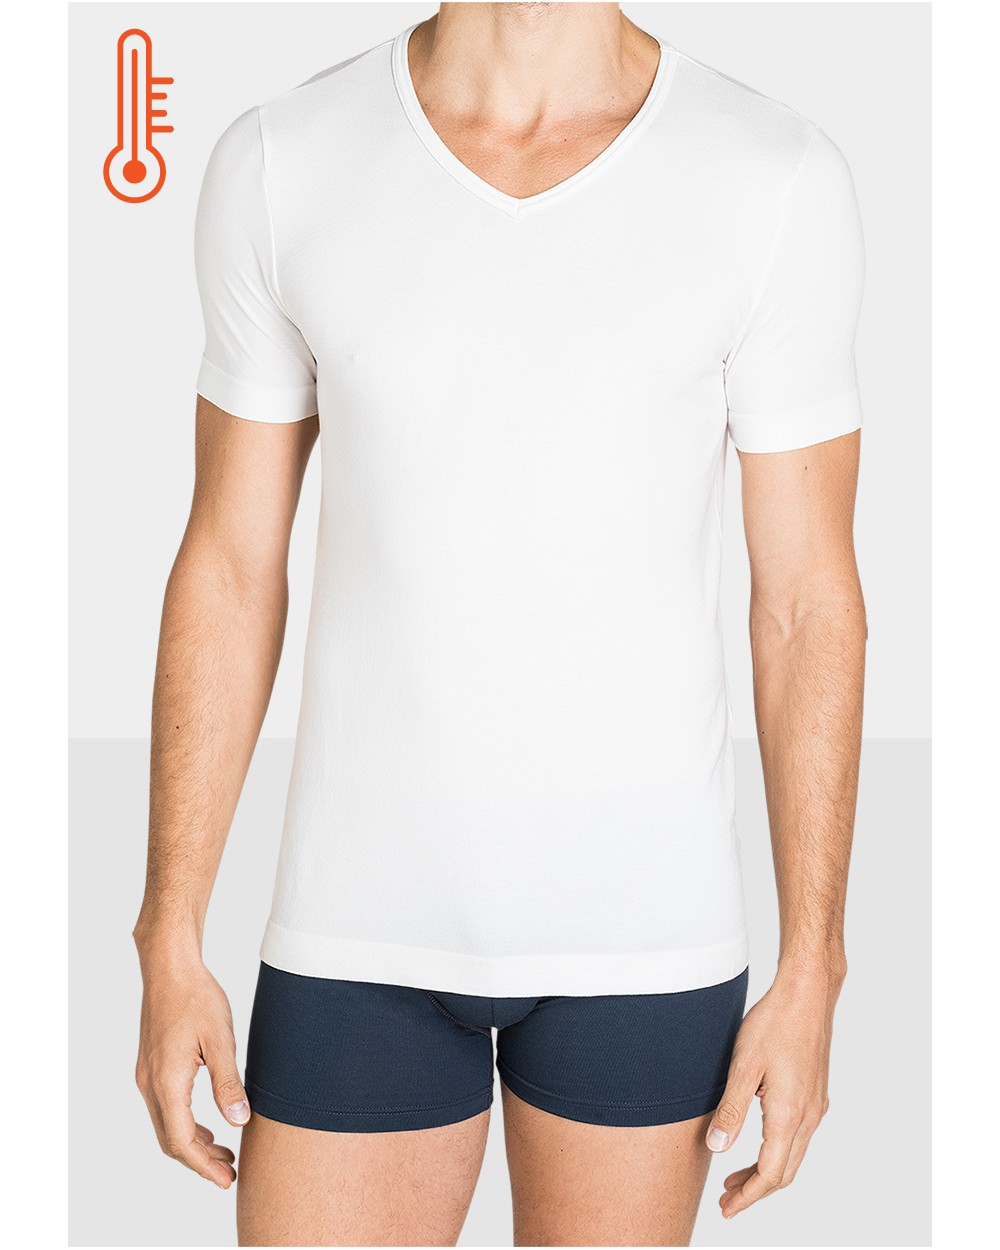 T-shirt Homme Col V Ultra Chaud Jersey